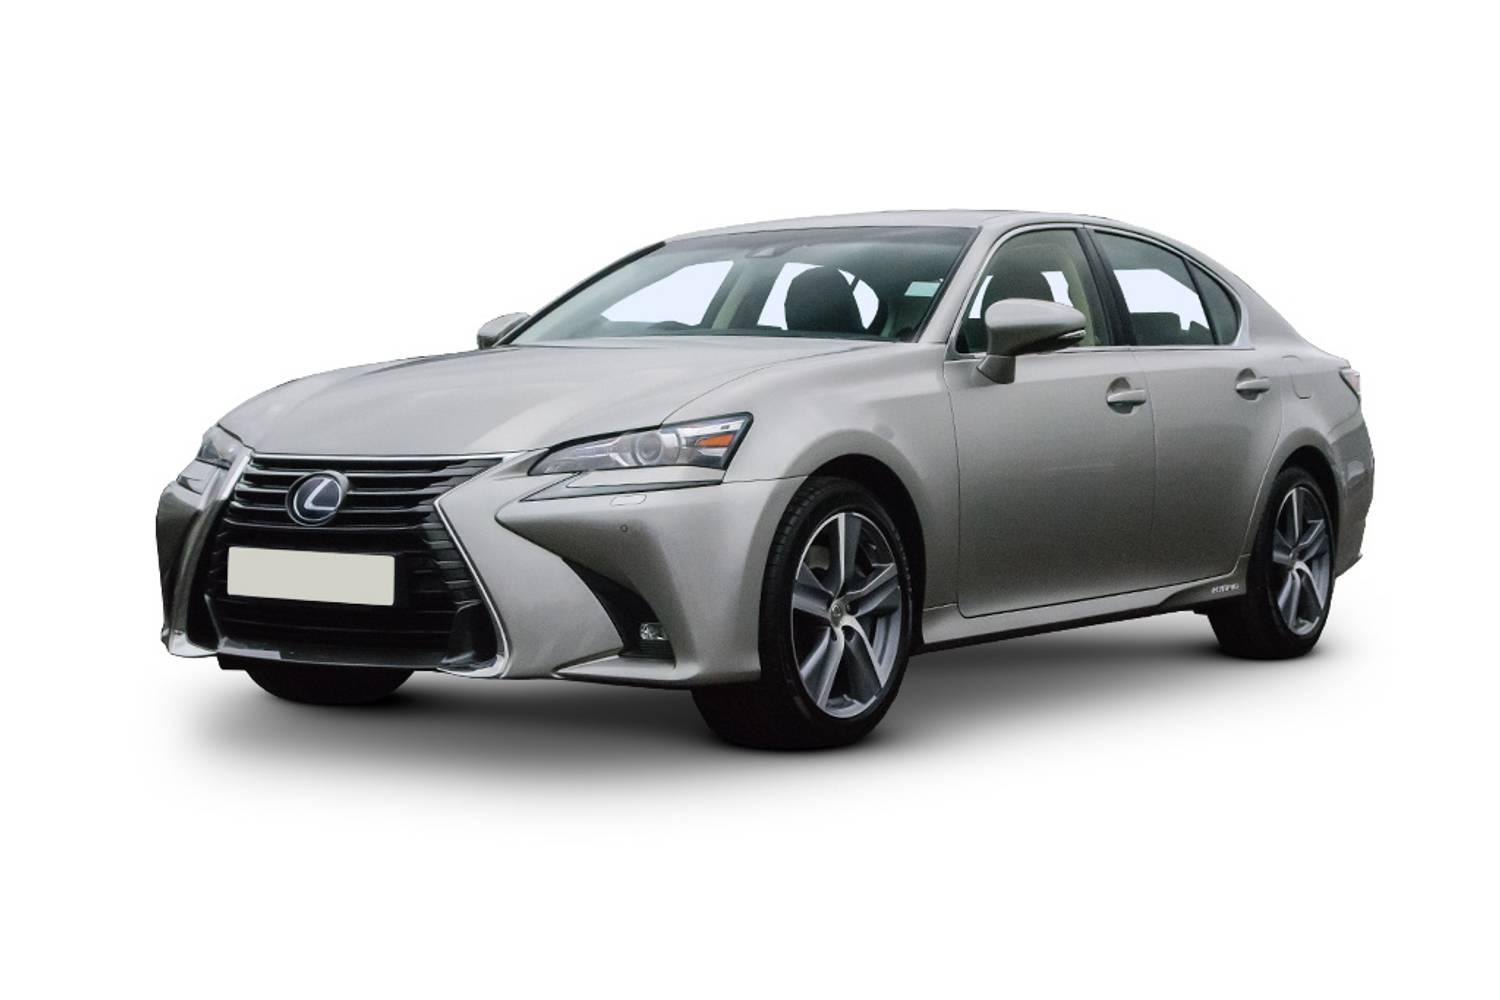 nashville trim cars iid motorcars of at is used base tn downtown lexus basetrim detail